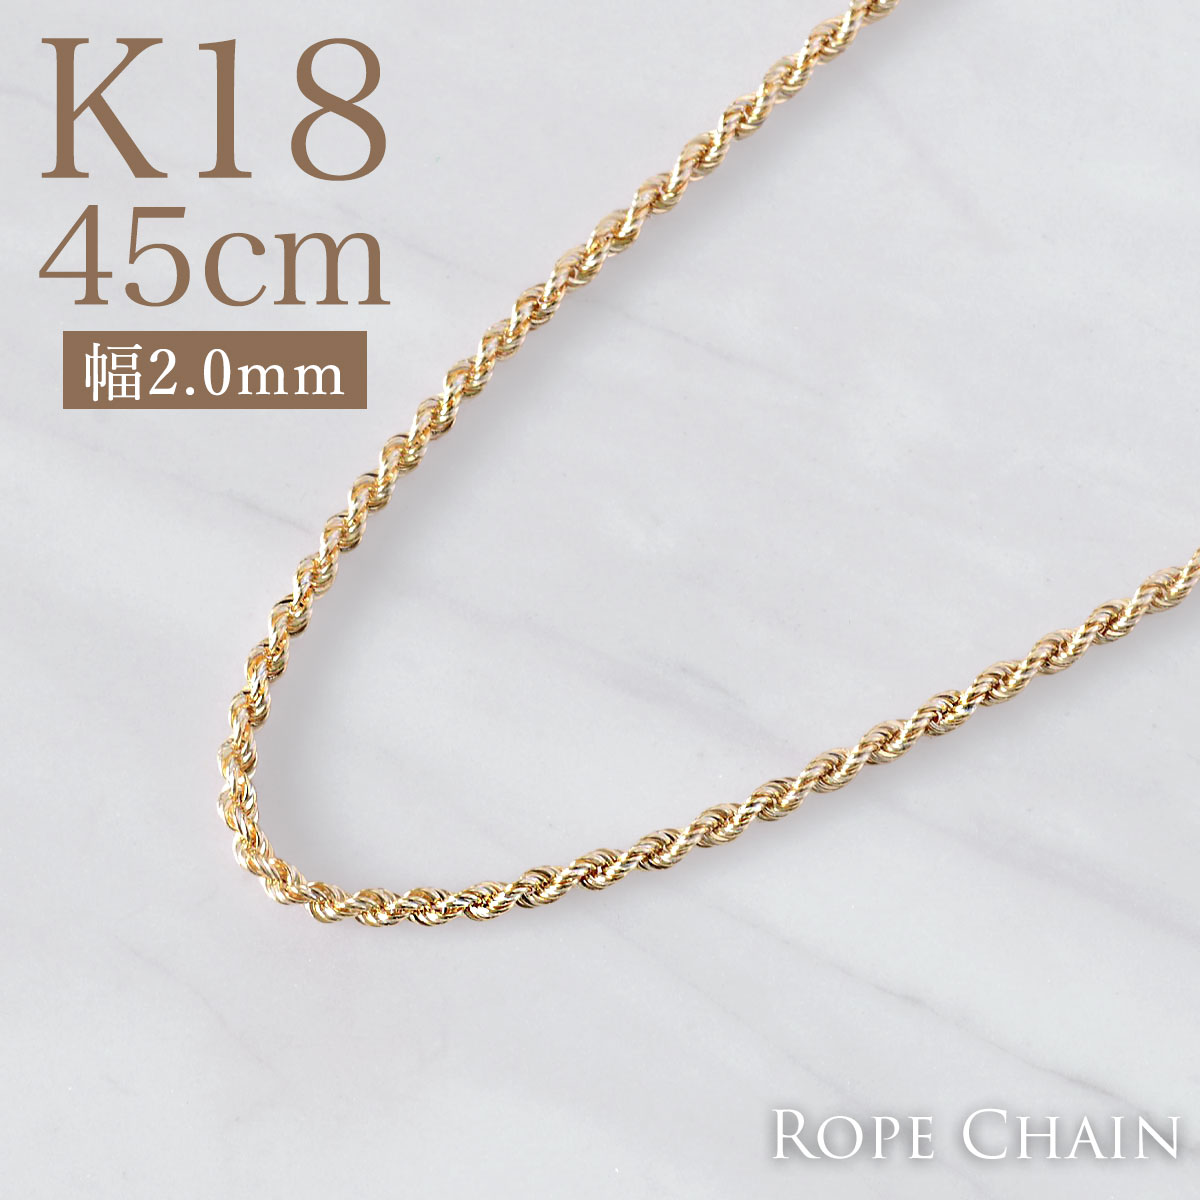 K18 イエローゴールド ロープ 幅2.0 チェーン 45cm / プレゼント ギフト gold necklace